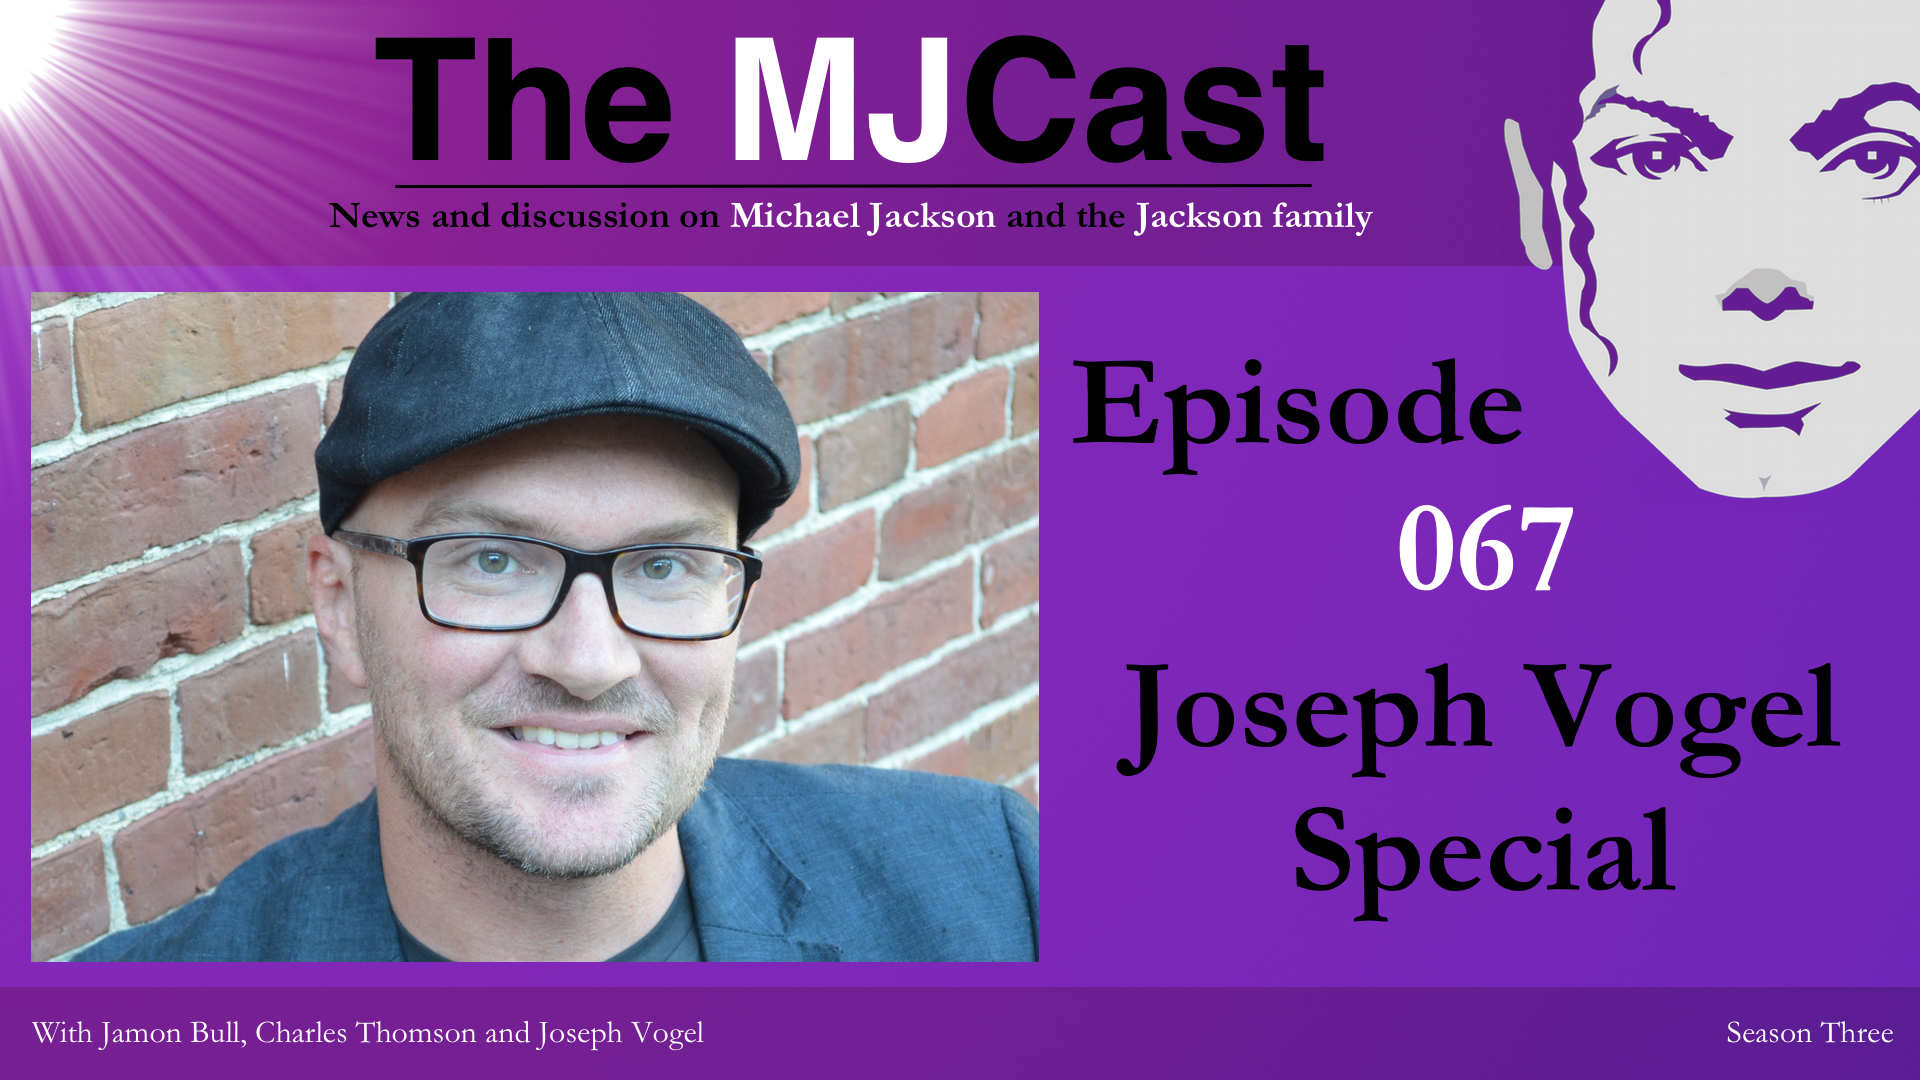 Episode 067 – Joseph Vogel Special – The MJCast